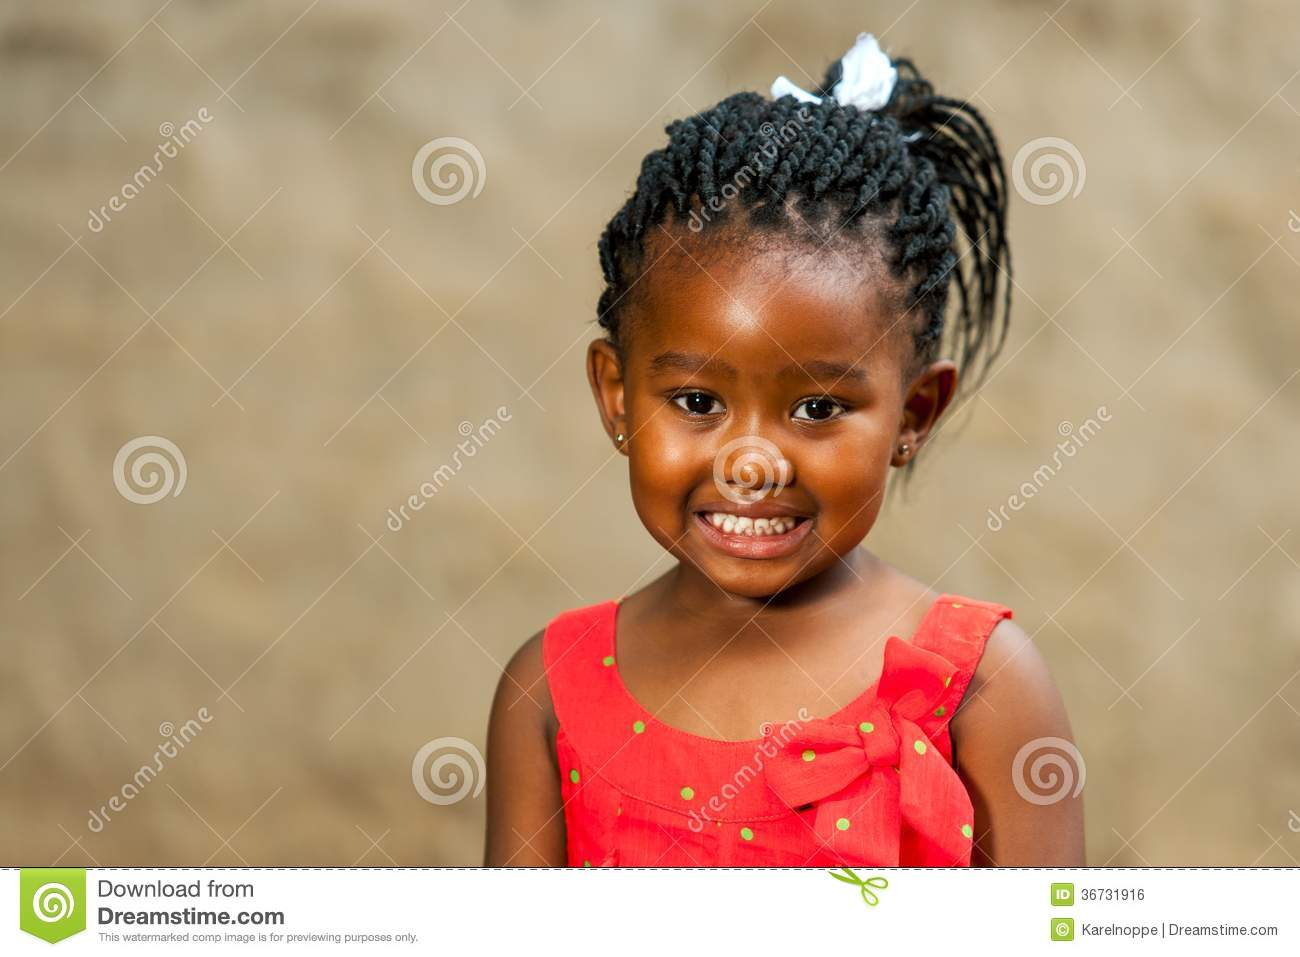 Little African Girl With Braided Hairstyle Royalty Free